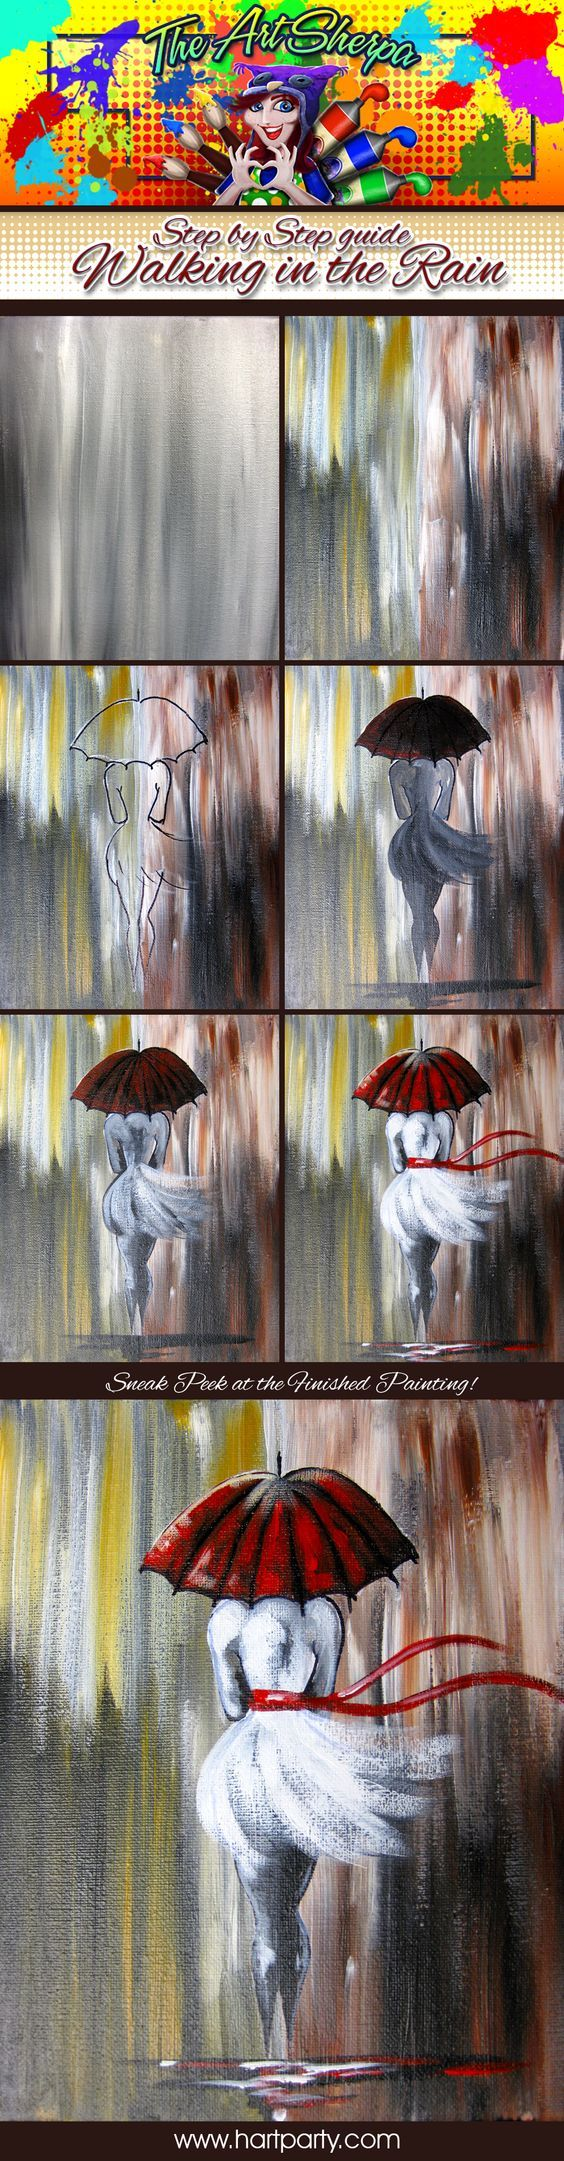 Walking In The Rain step by step. 16x20 Canvas Acrylic paint in the colors Yellow Ocher, Burnt sienna, titanium white, Mars Black, and Cadmium Red. Assorted acrylic brushes- As Seen the fthe fully guided Youtube Tutorial by The Art Sherpa https://youtu.be/vD7x93pLq30: